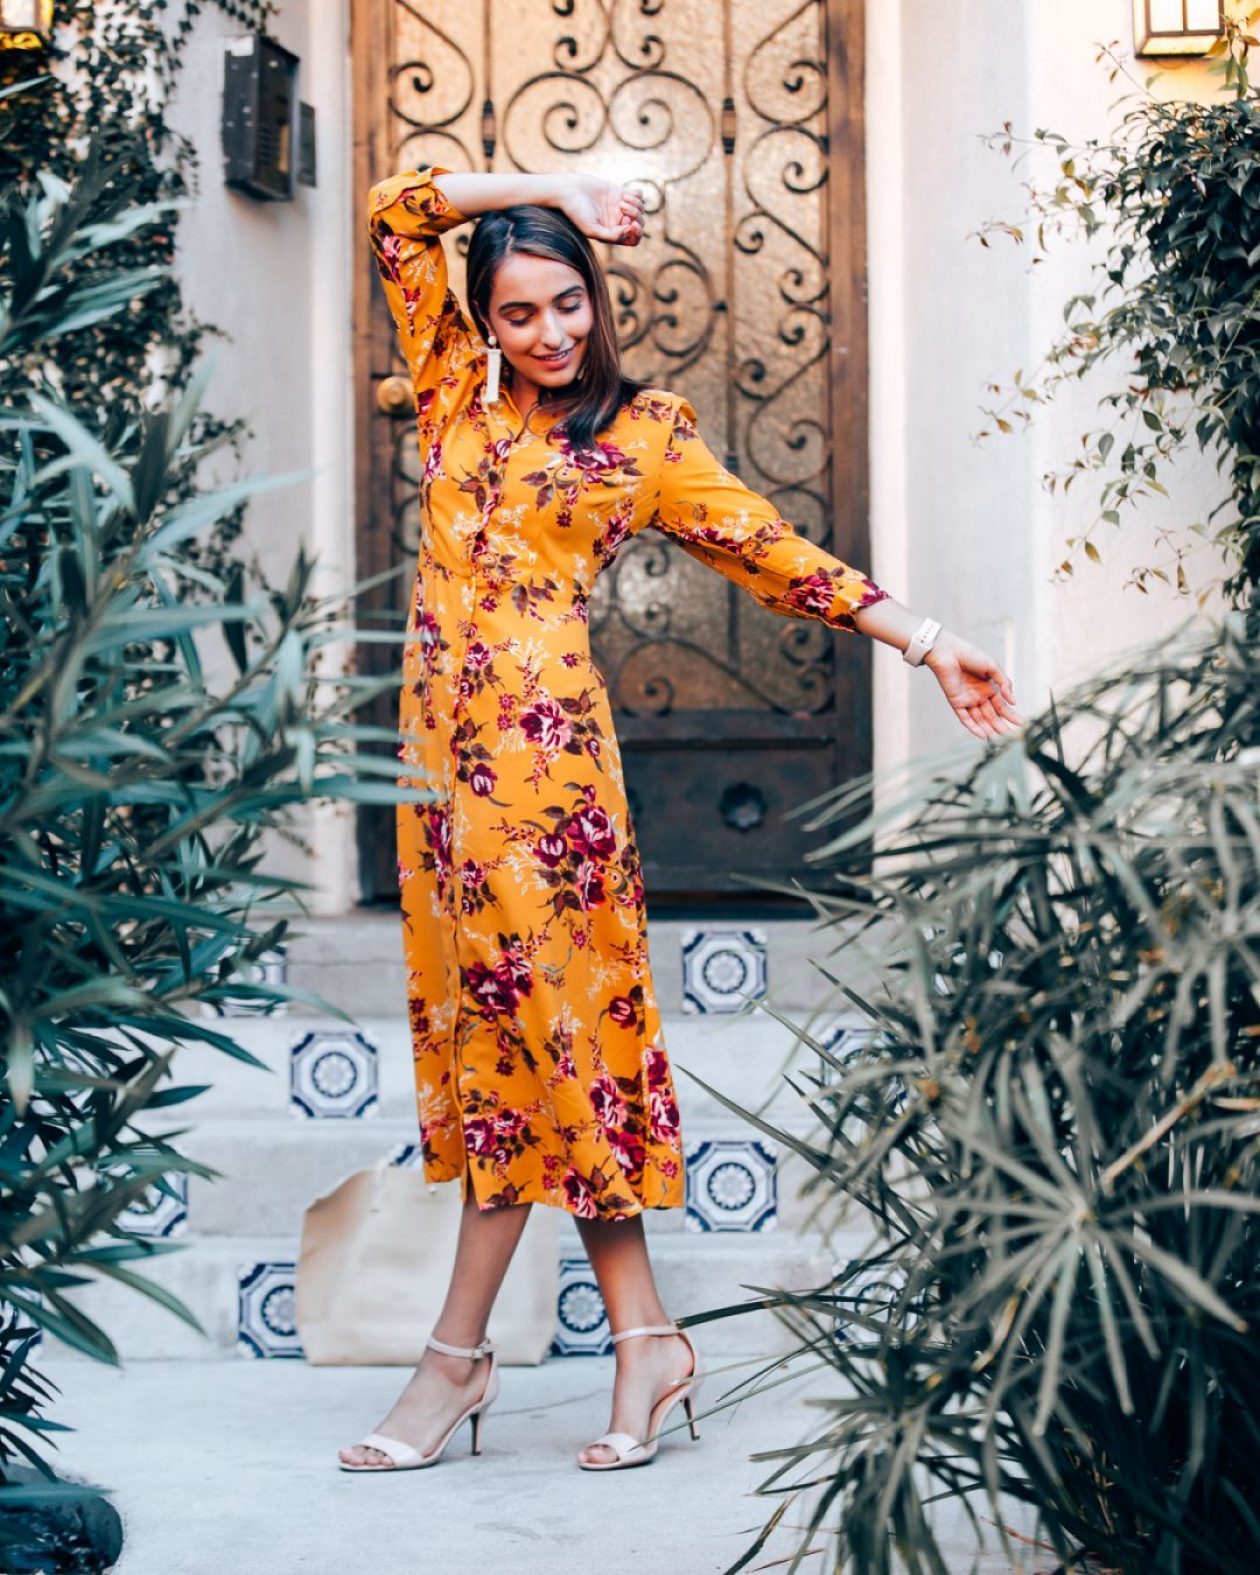 LA based fashion and beauty blogger shares her favorite fall fashion trends with walmart.